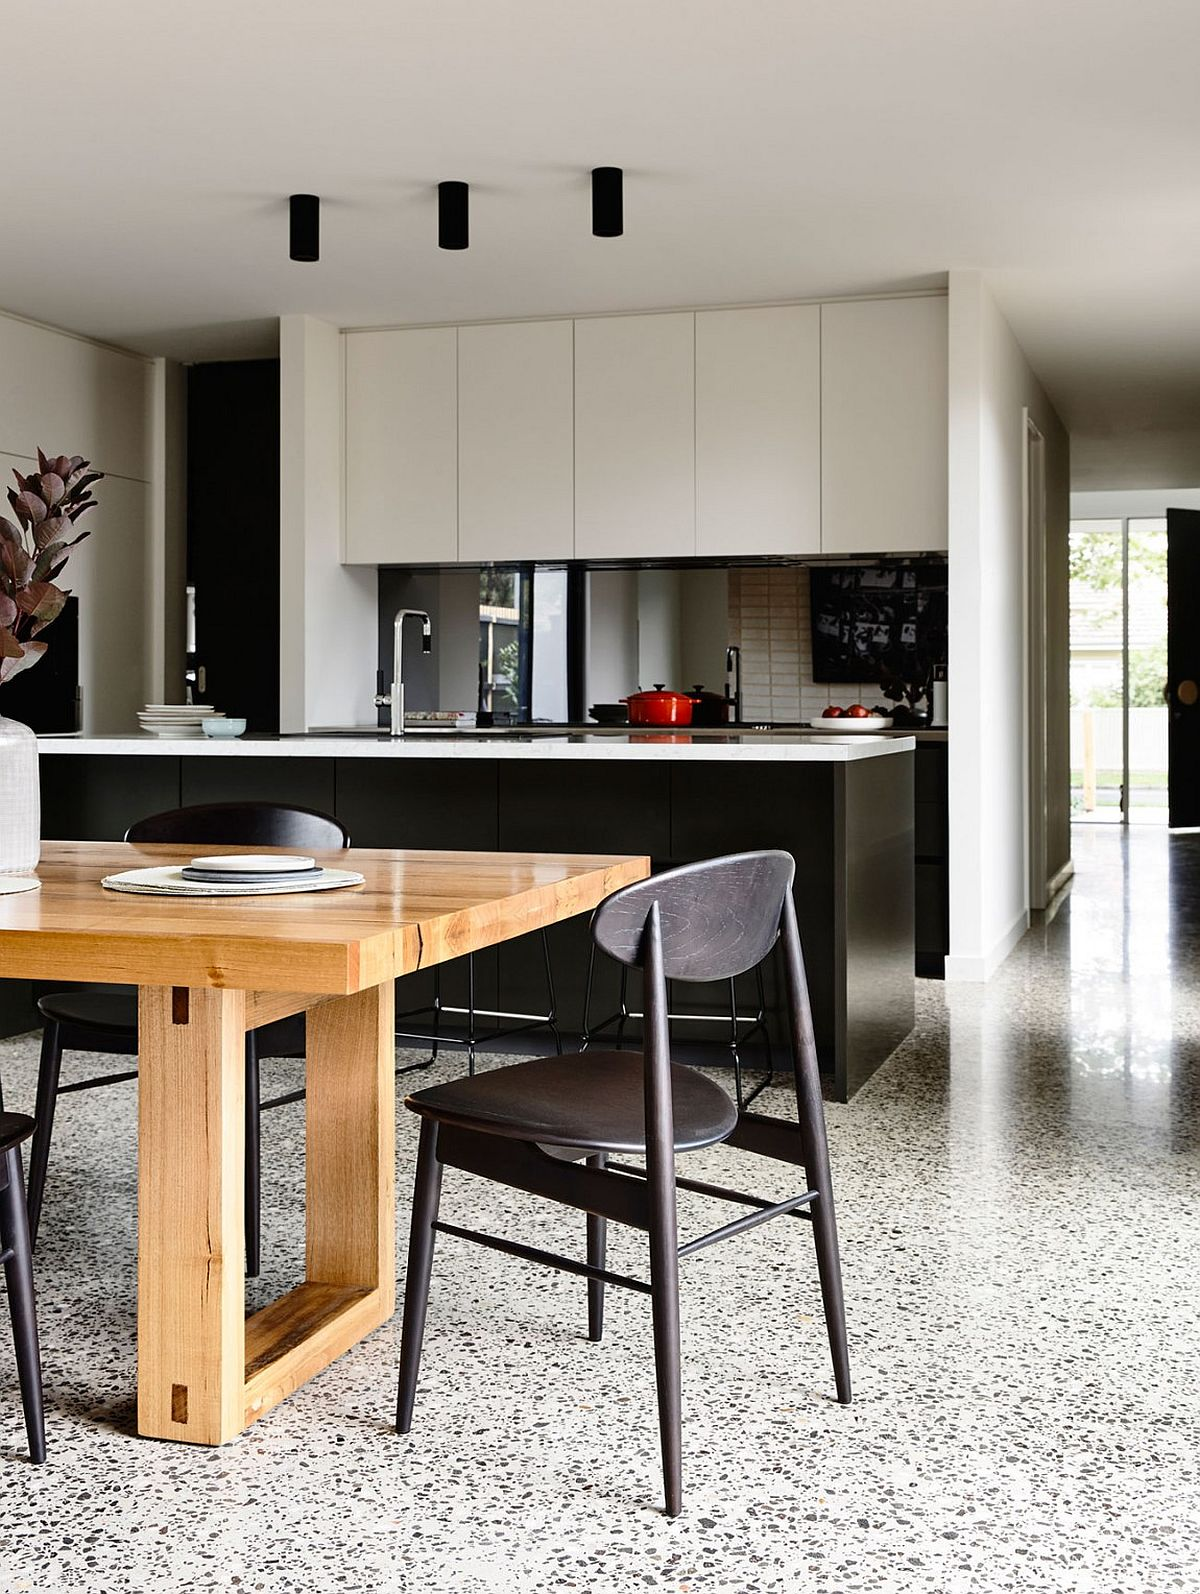 Kitchen island in black with a white countertop